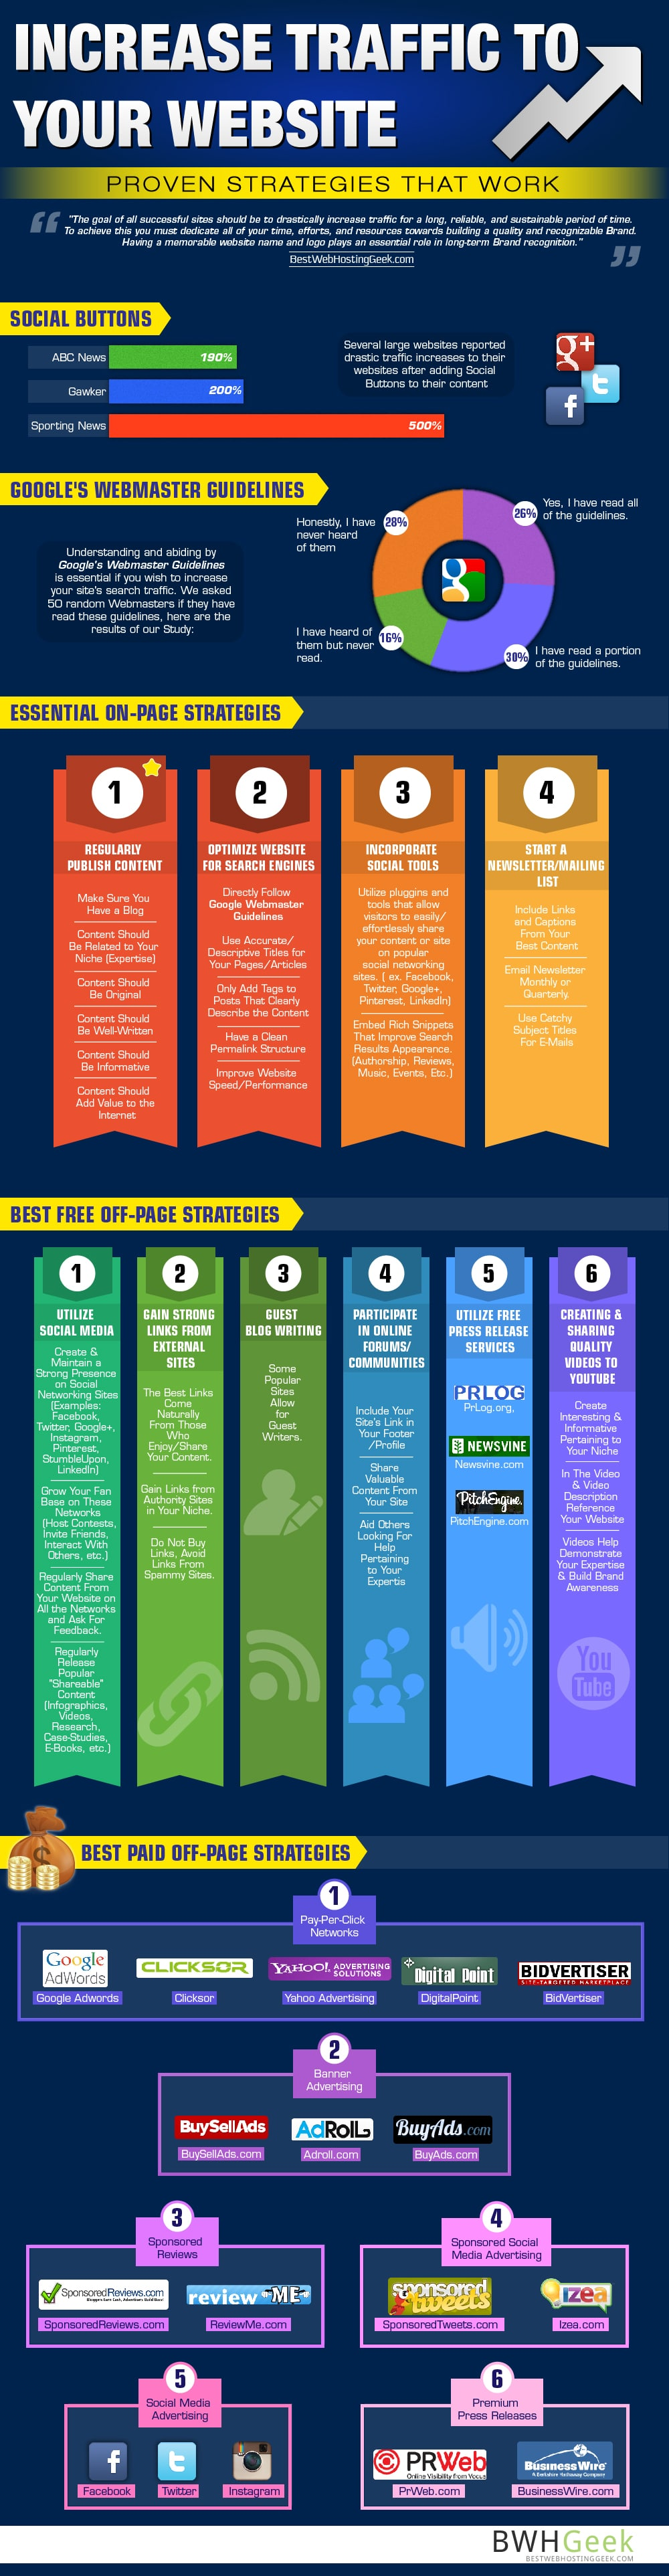 Top Strategies To Drive More Traffic To Your Website [Infographic]